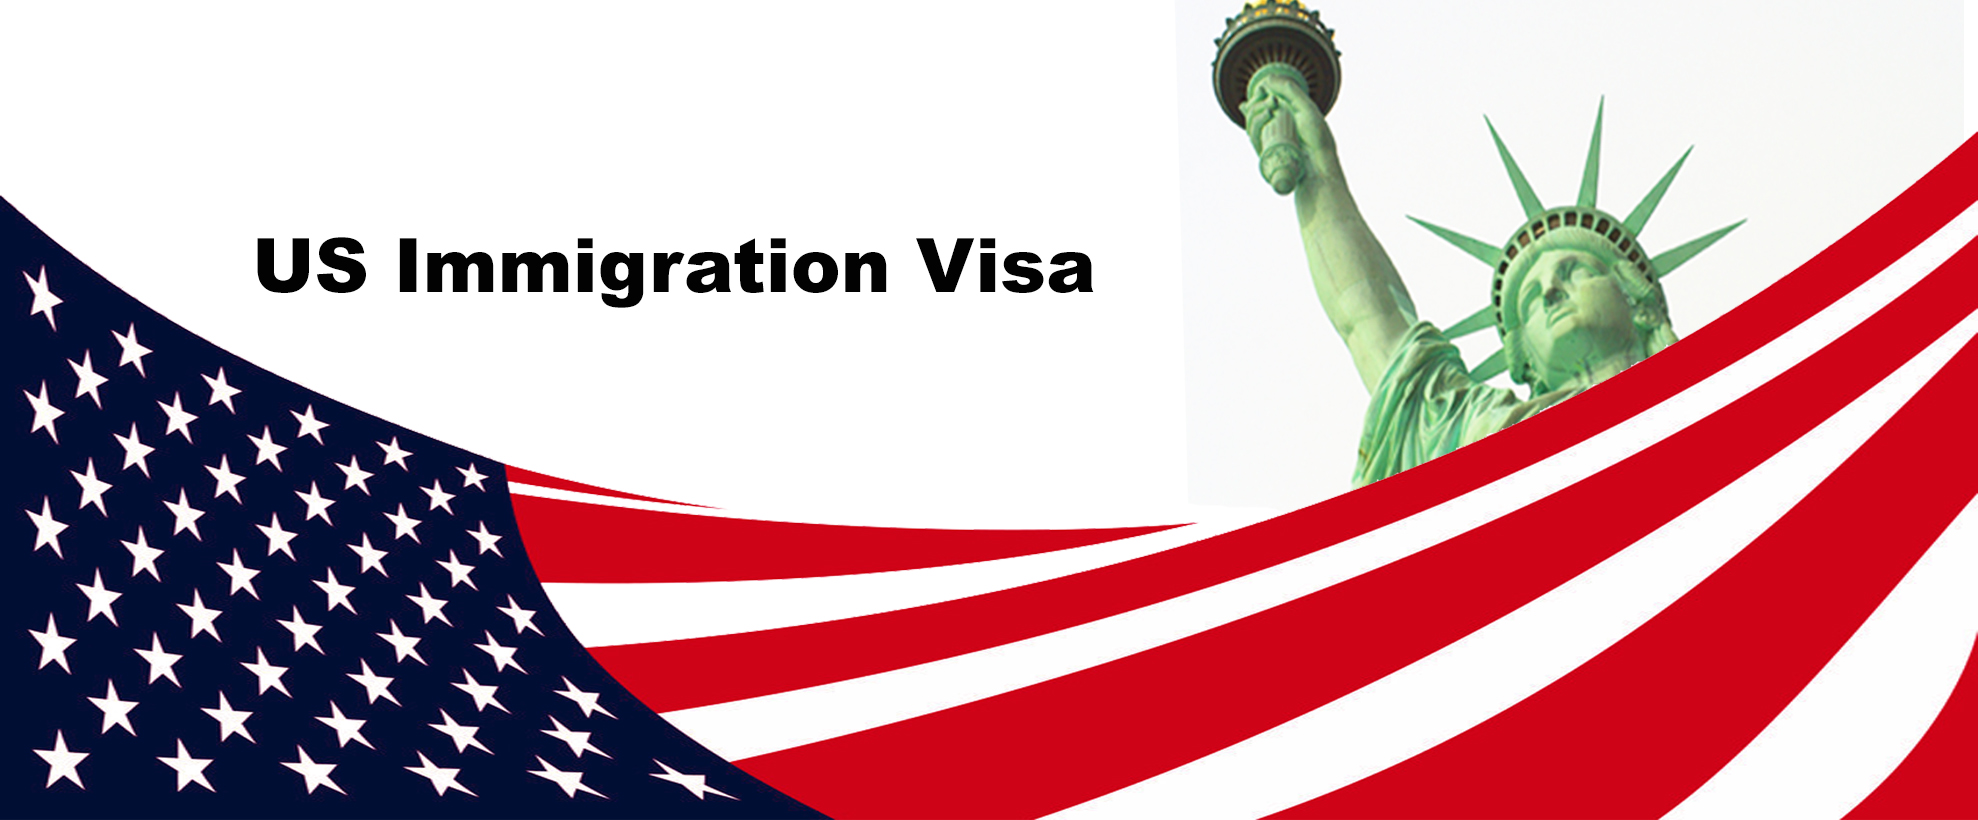 Conditions Needed for Fulfilling the Visa Requirements